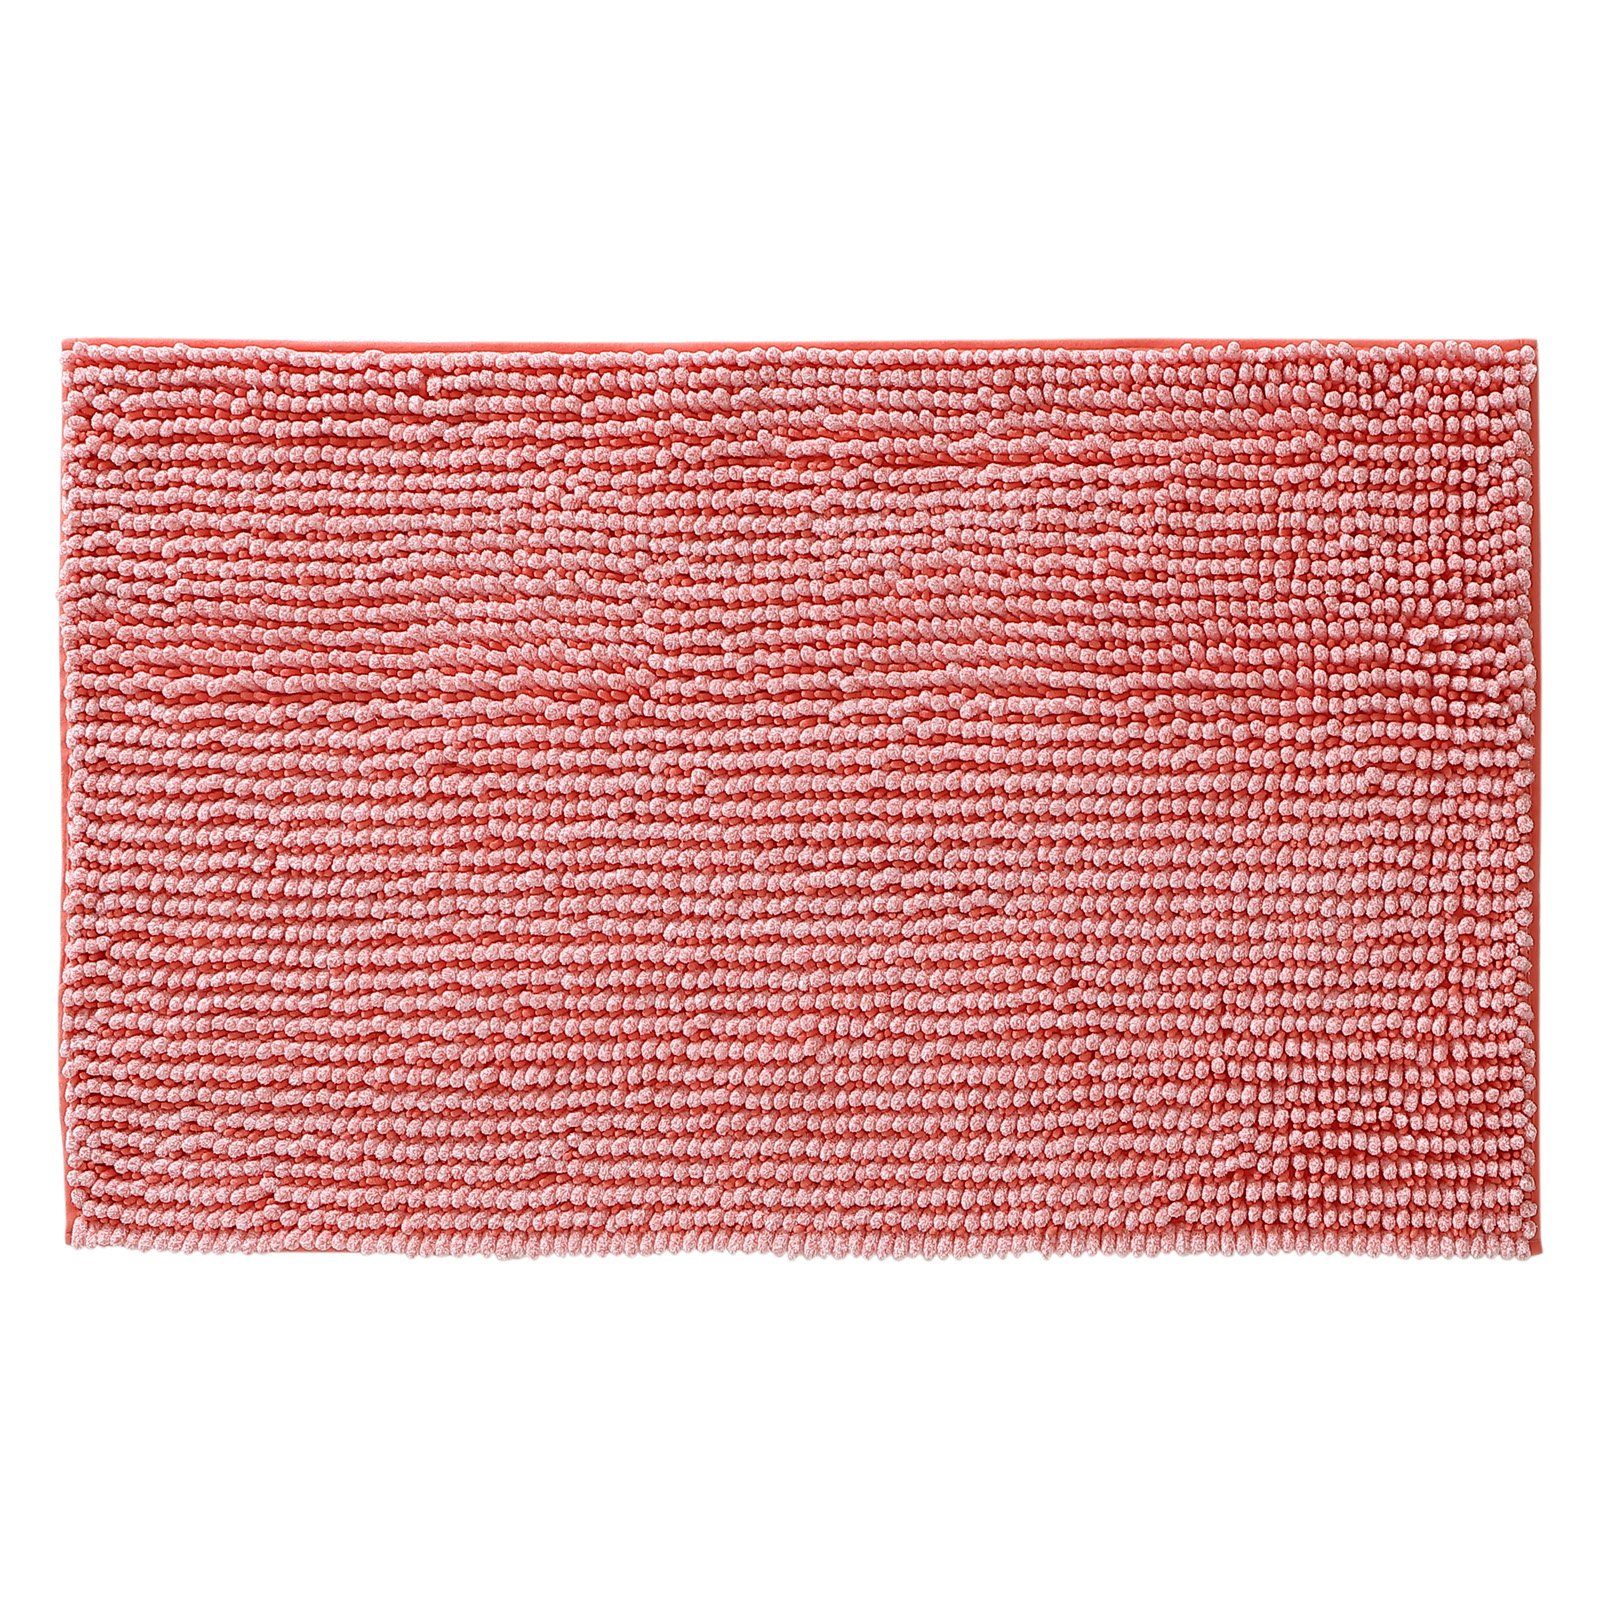 ***DISCONTINUED*** VCNY Home Solid Heathered Noodle Bath Rug, Multiple Colors and Sizes... by VCNY Home